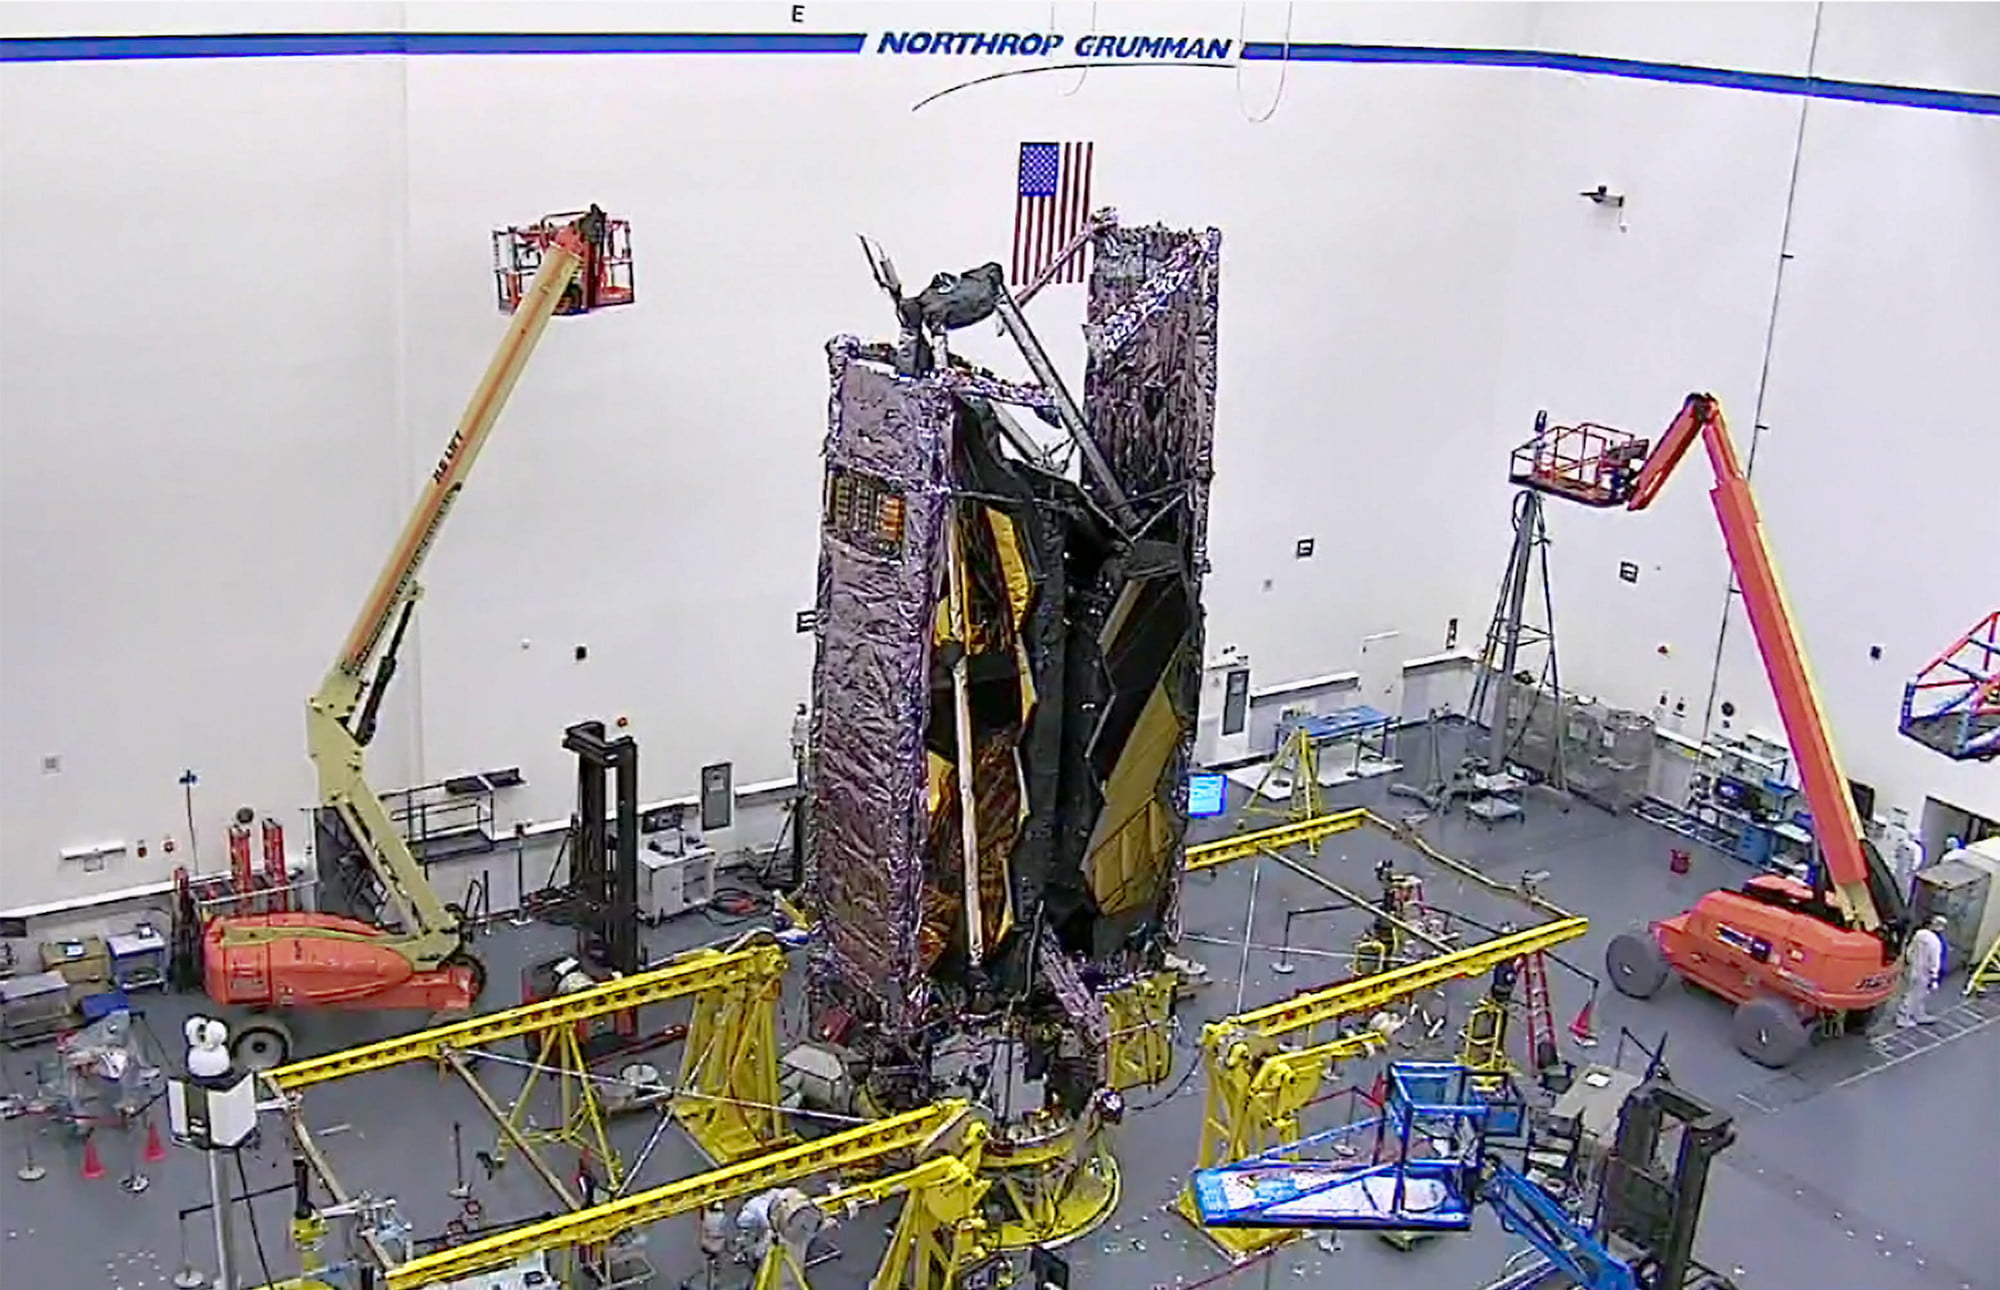 james-webb-space-telescope-images-feature.jpg